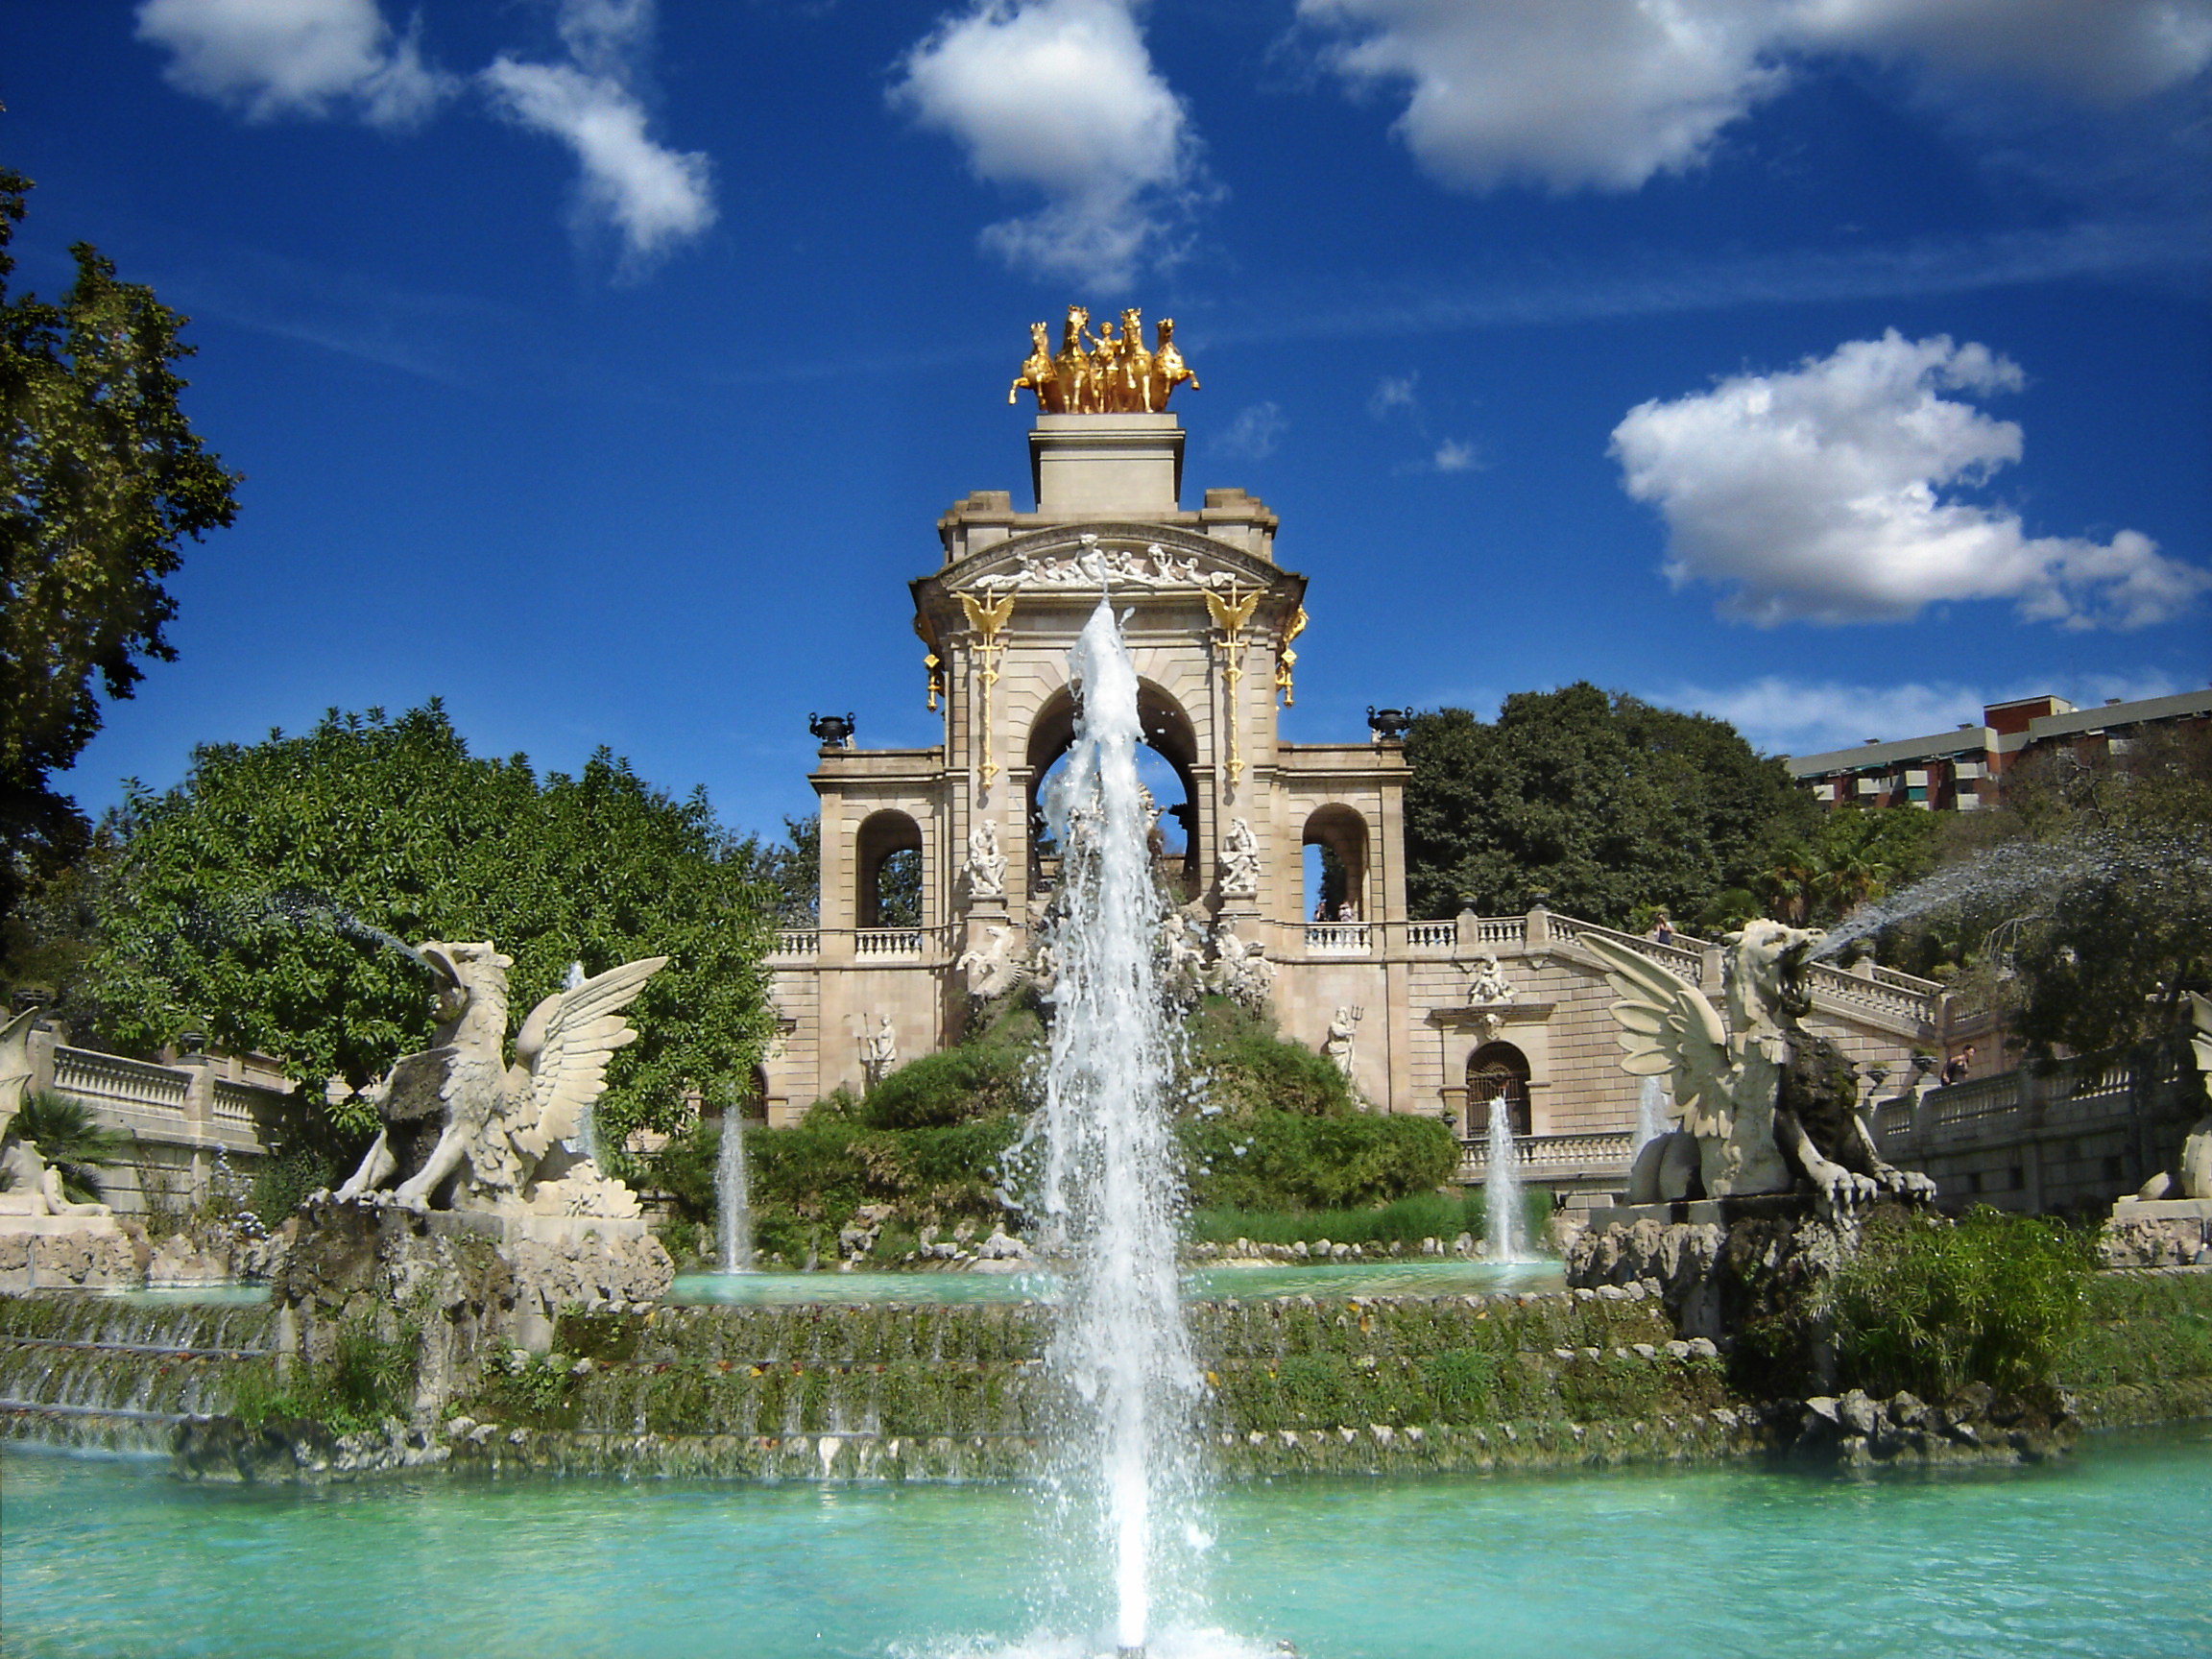 Visit Parc de la Ciutadella on bike tour